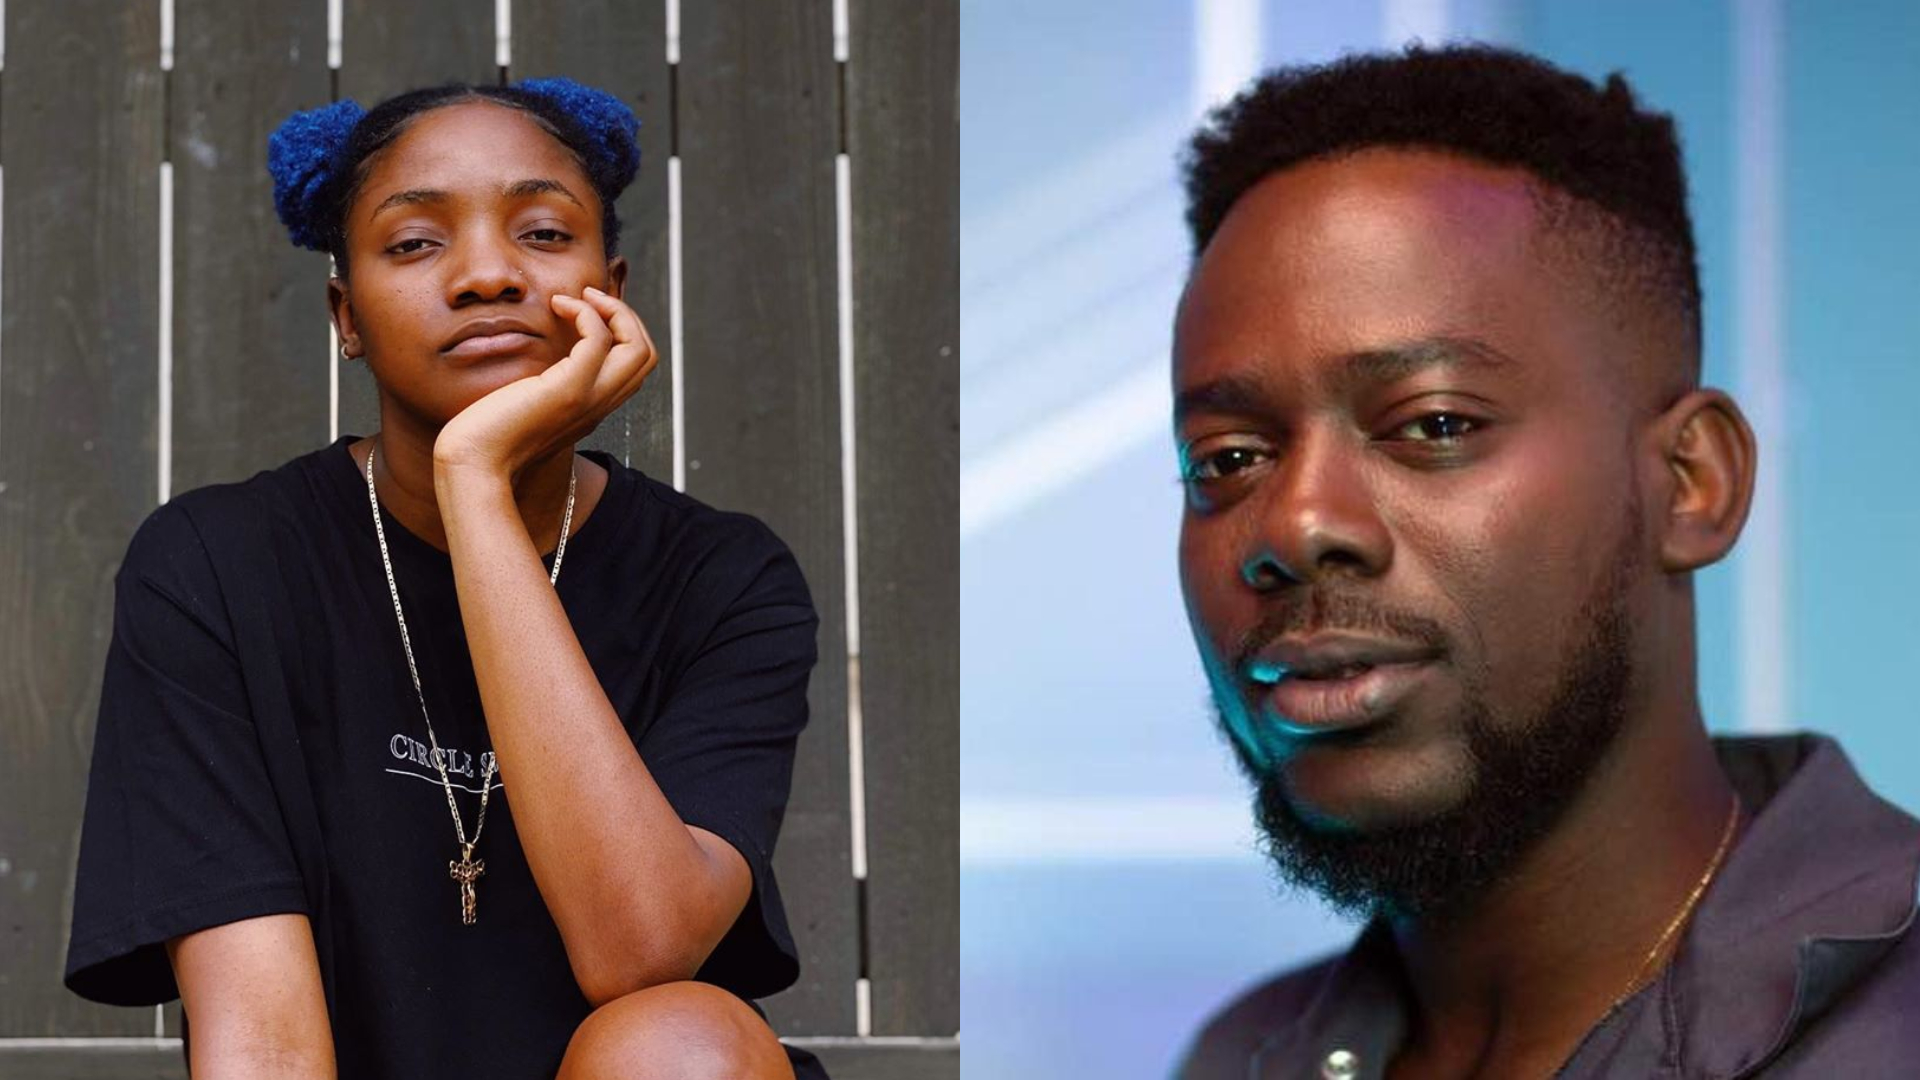 """""""The timing of my wife's apology was pure coincidence"""" - Adekunle Gold reacts after Simi was accused of apologizing to LGBTQ community for """"selfish"""" reasons"""